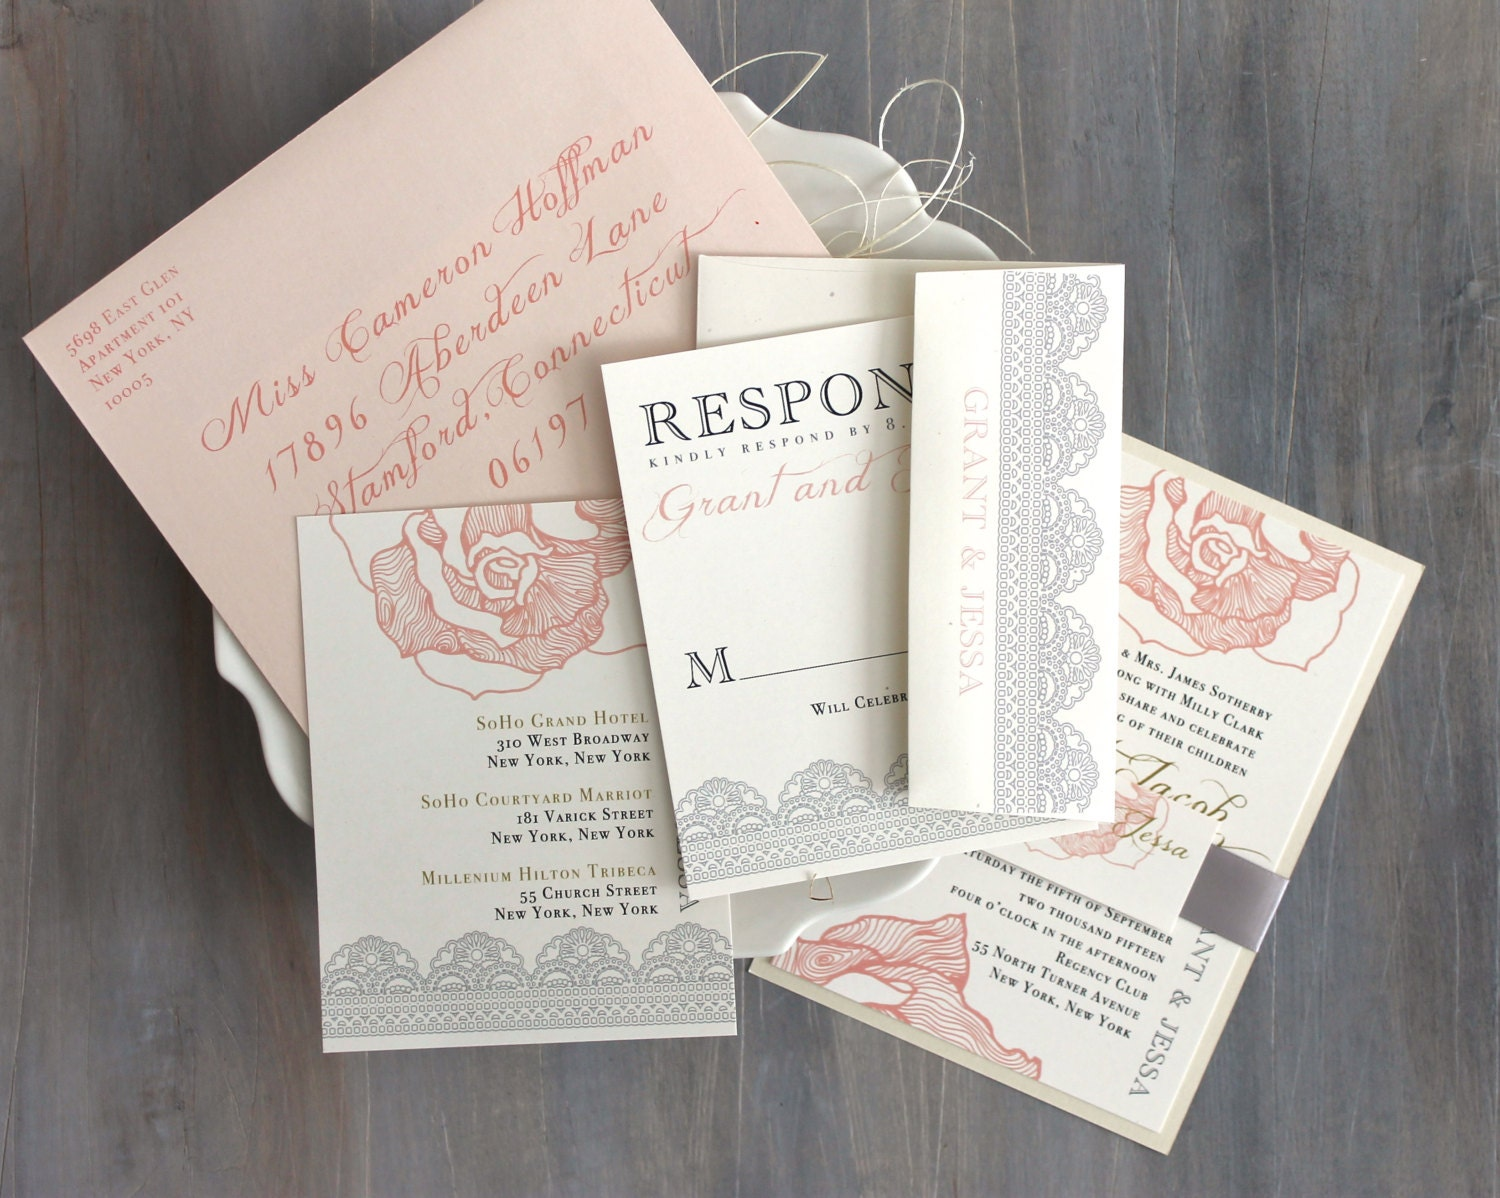 Lace Wedding Invitation: Lace Wedding Invitation Blush Peach Pink Wedding